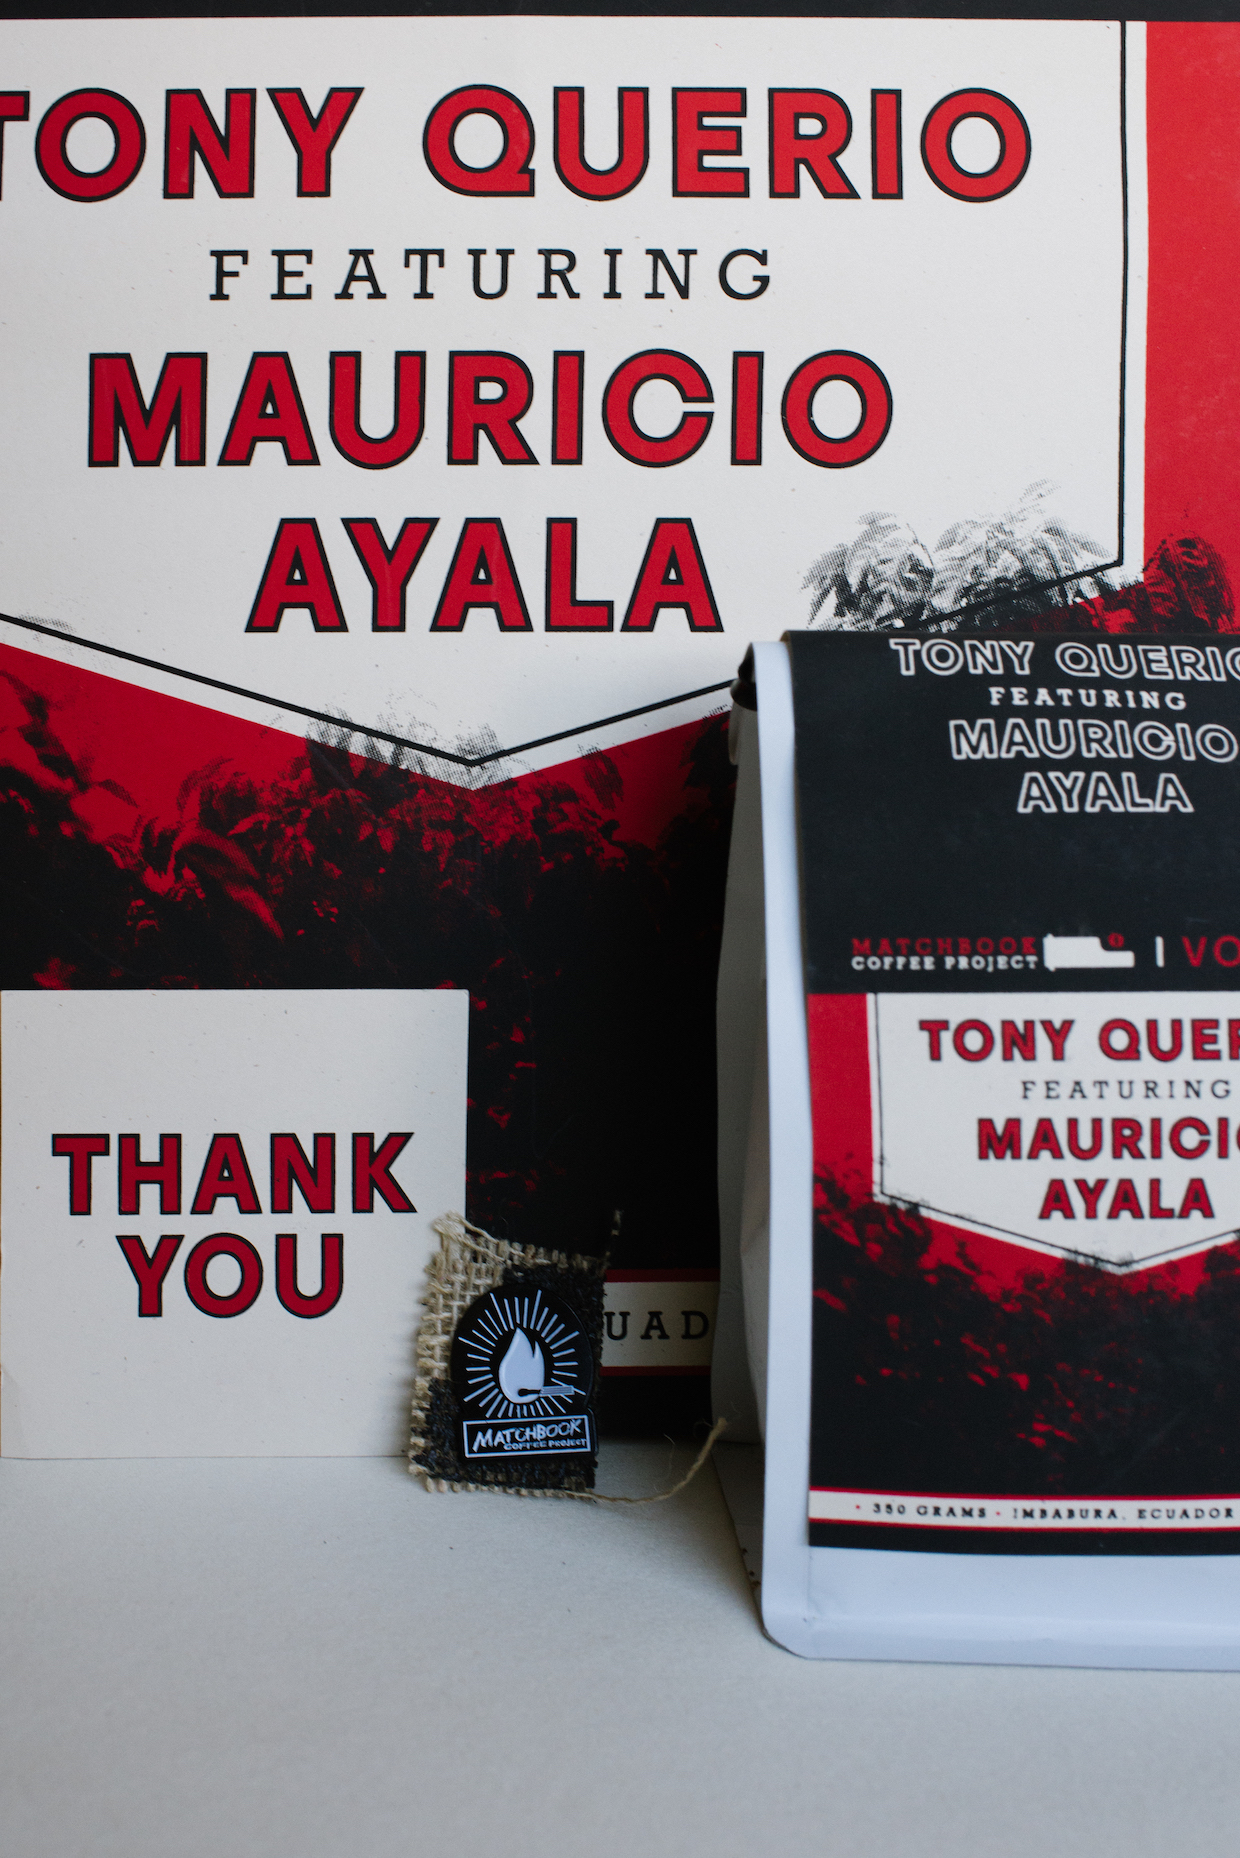 A Matchbook release featuring roaster Tony Querio.